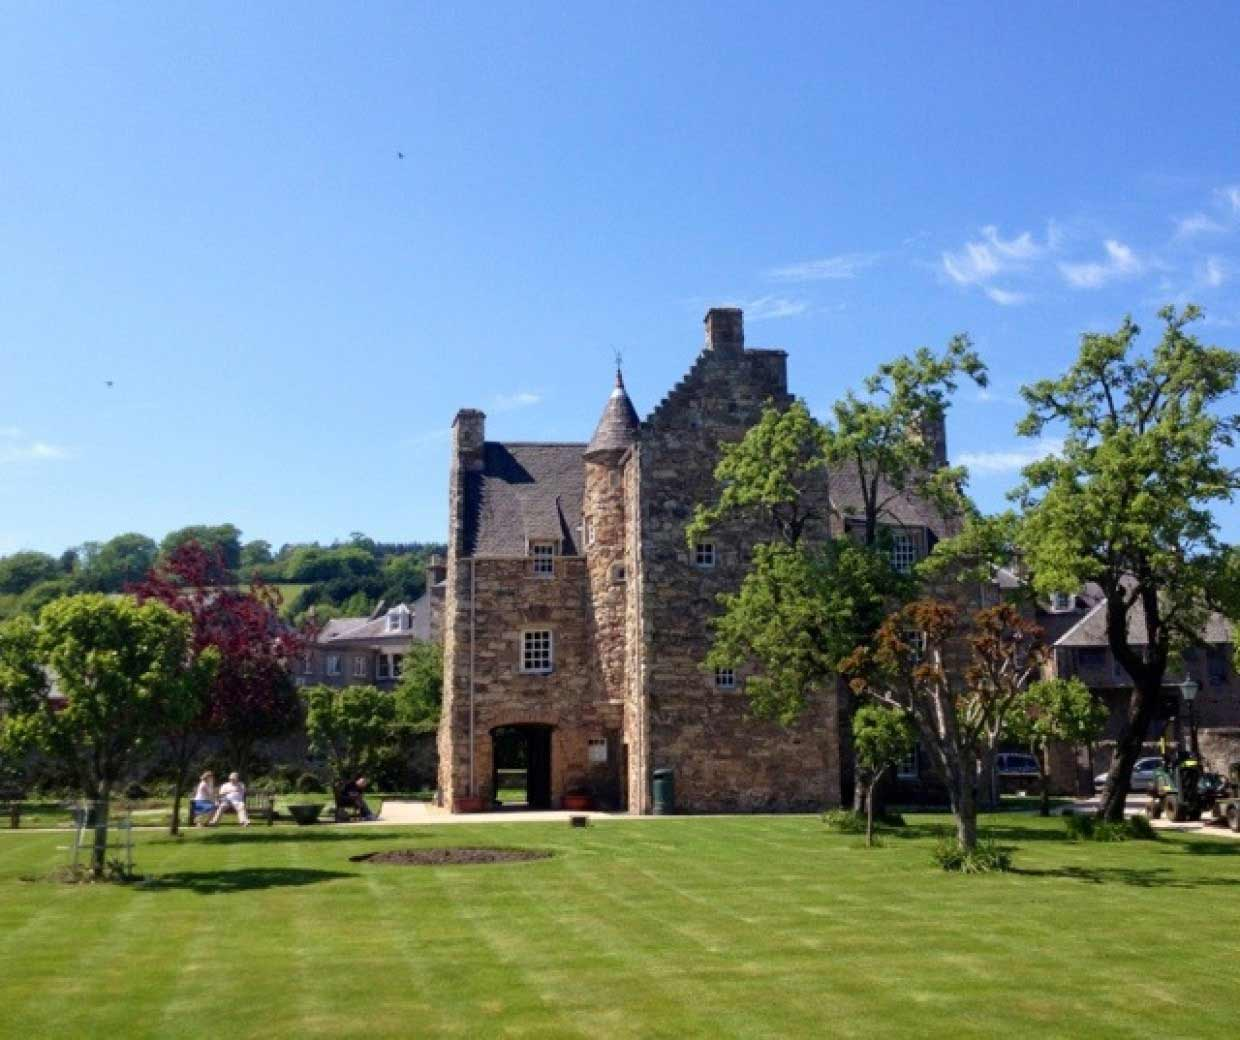 Time for a chill by the Jedburgh home of Mary Queen of Scots